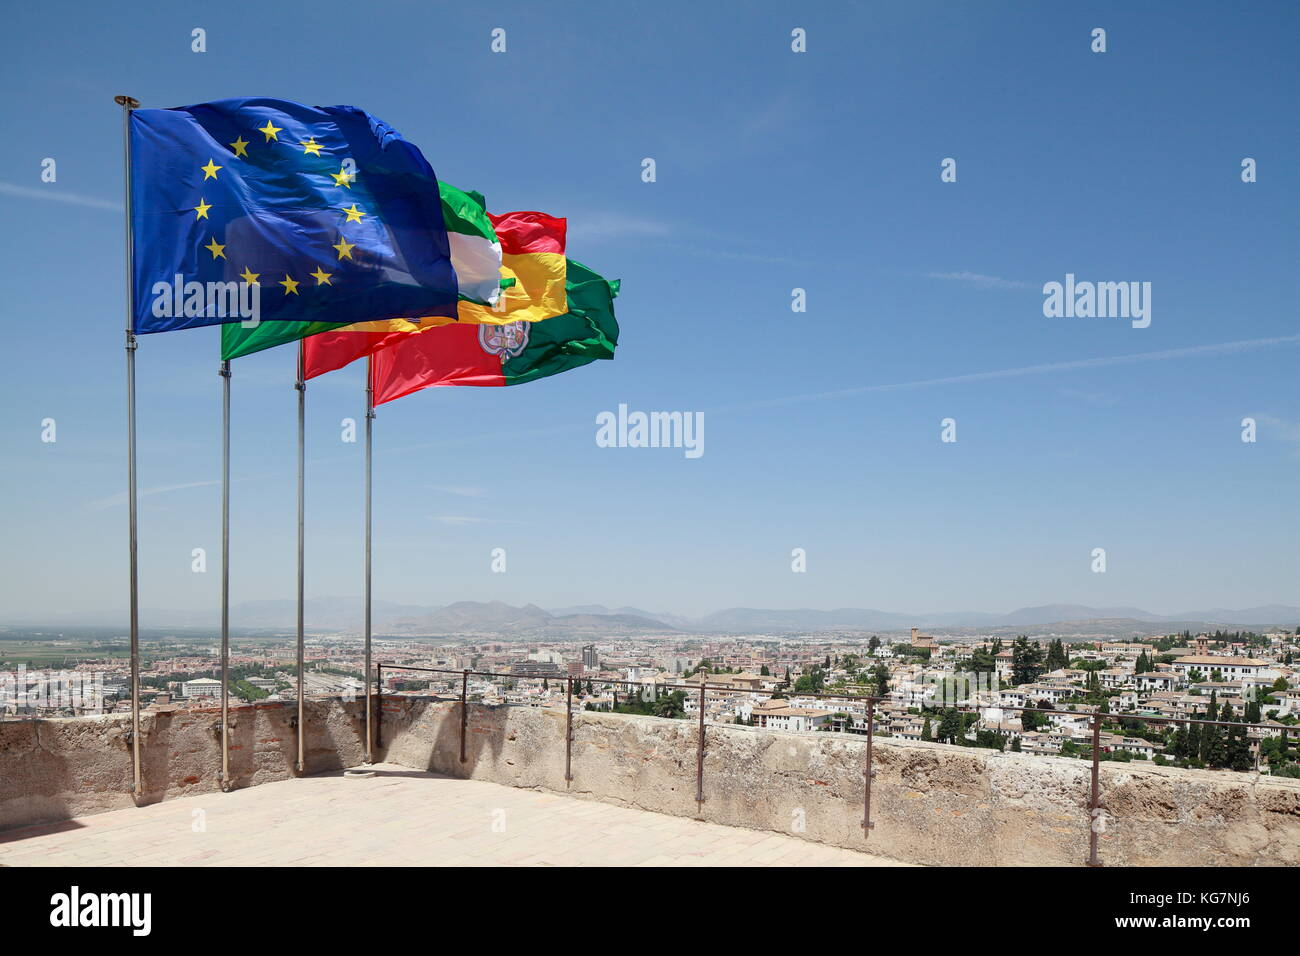 Flags, Alhambra Palace, Spain - Stock Image